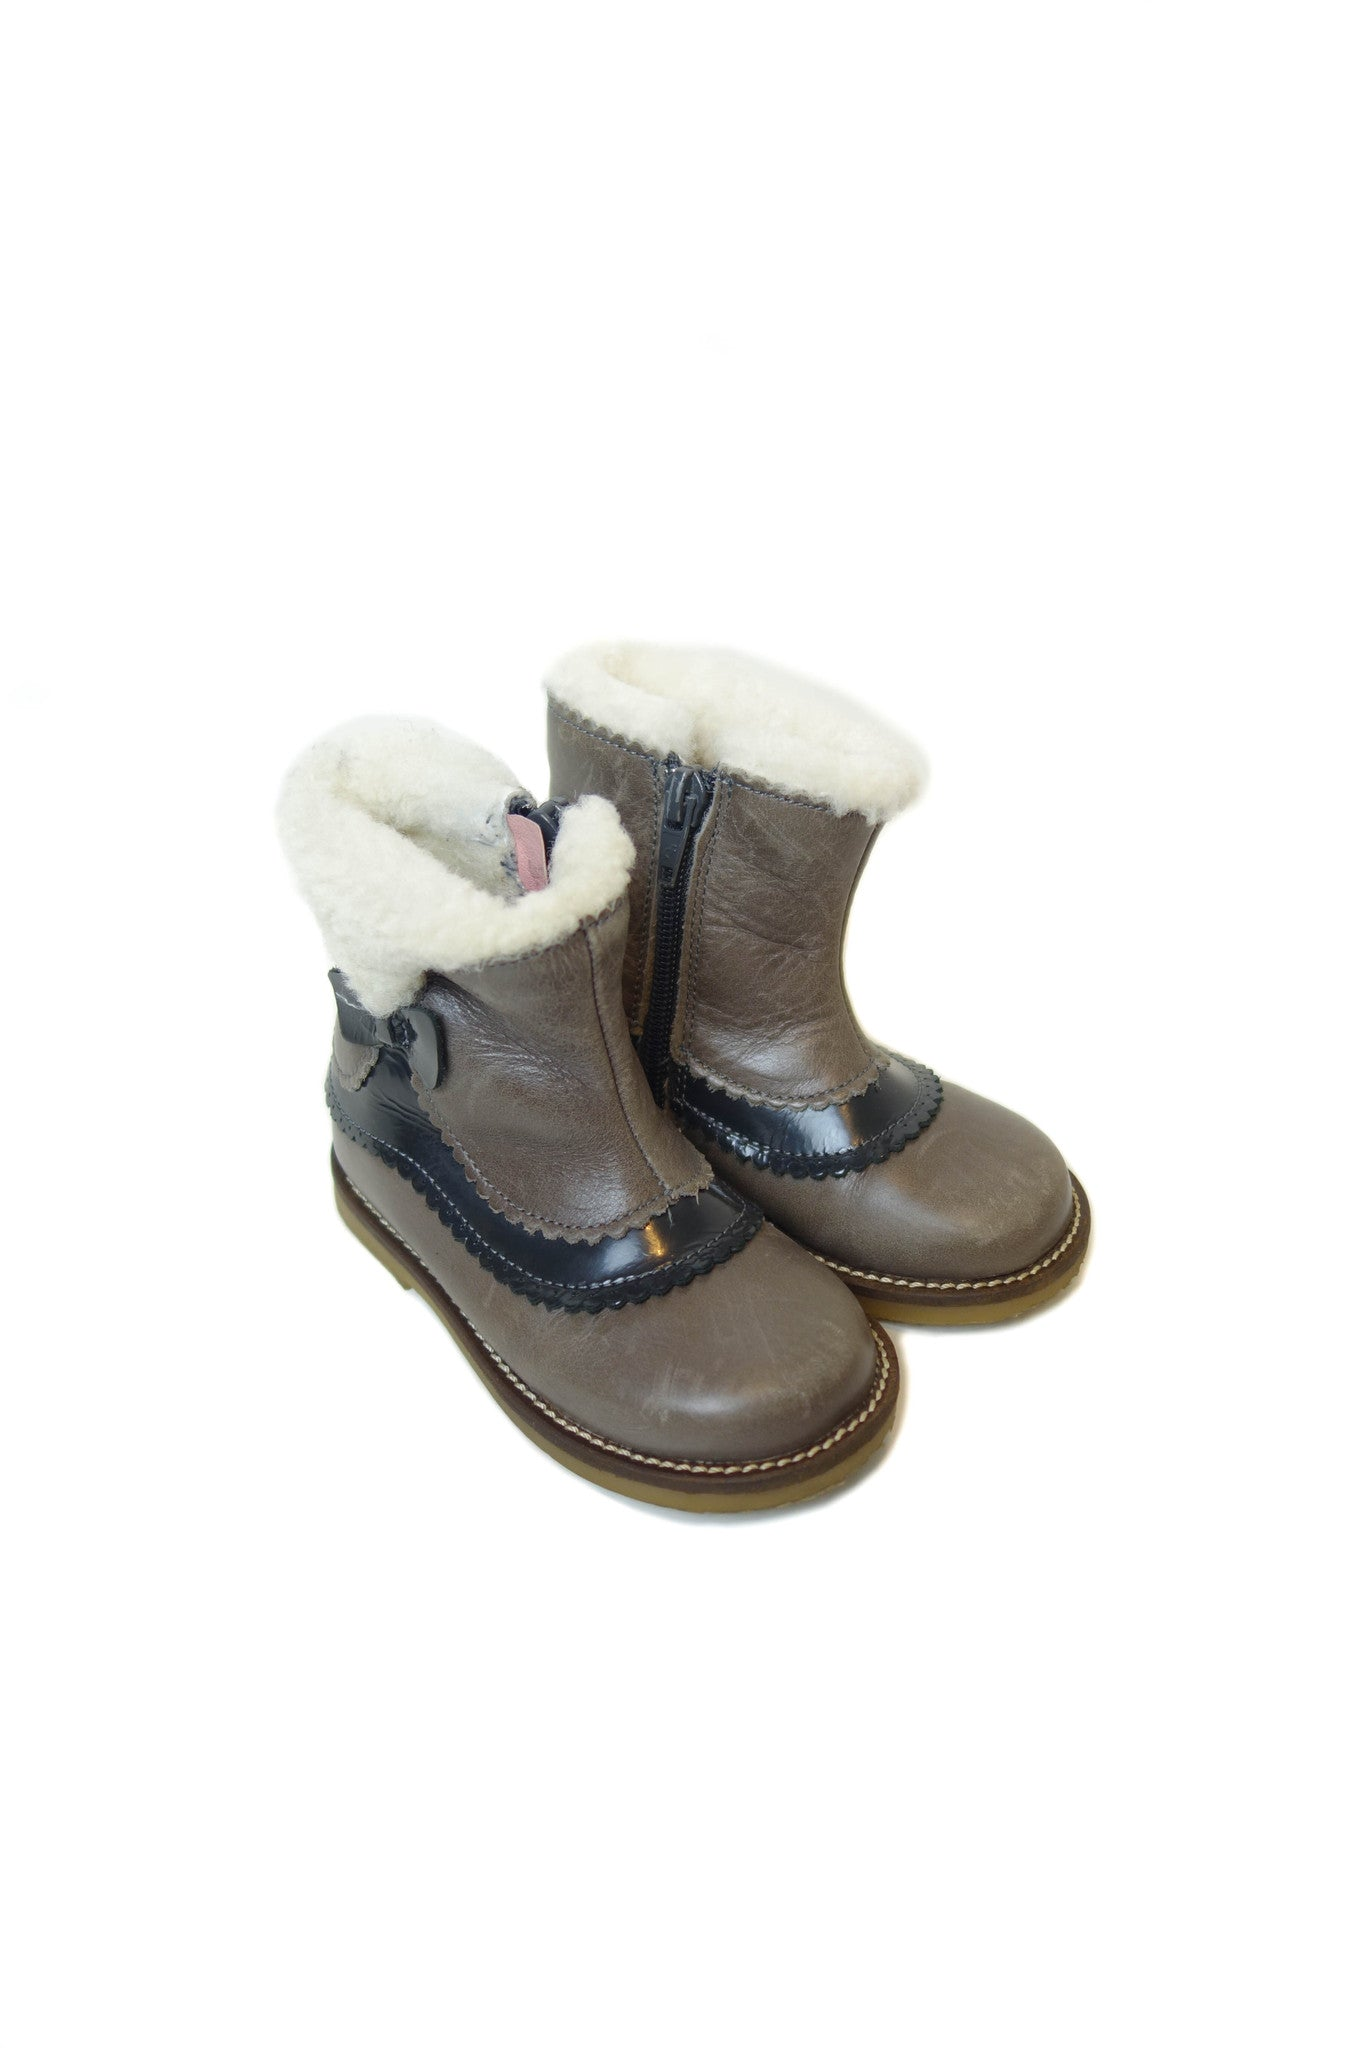 10002015 Jacadi Baby~Boots 18-24M (EU 23) at Retykle